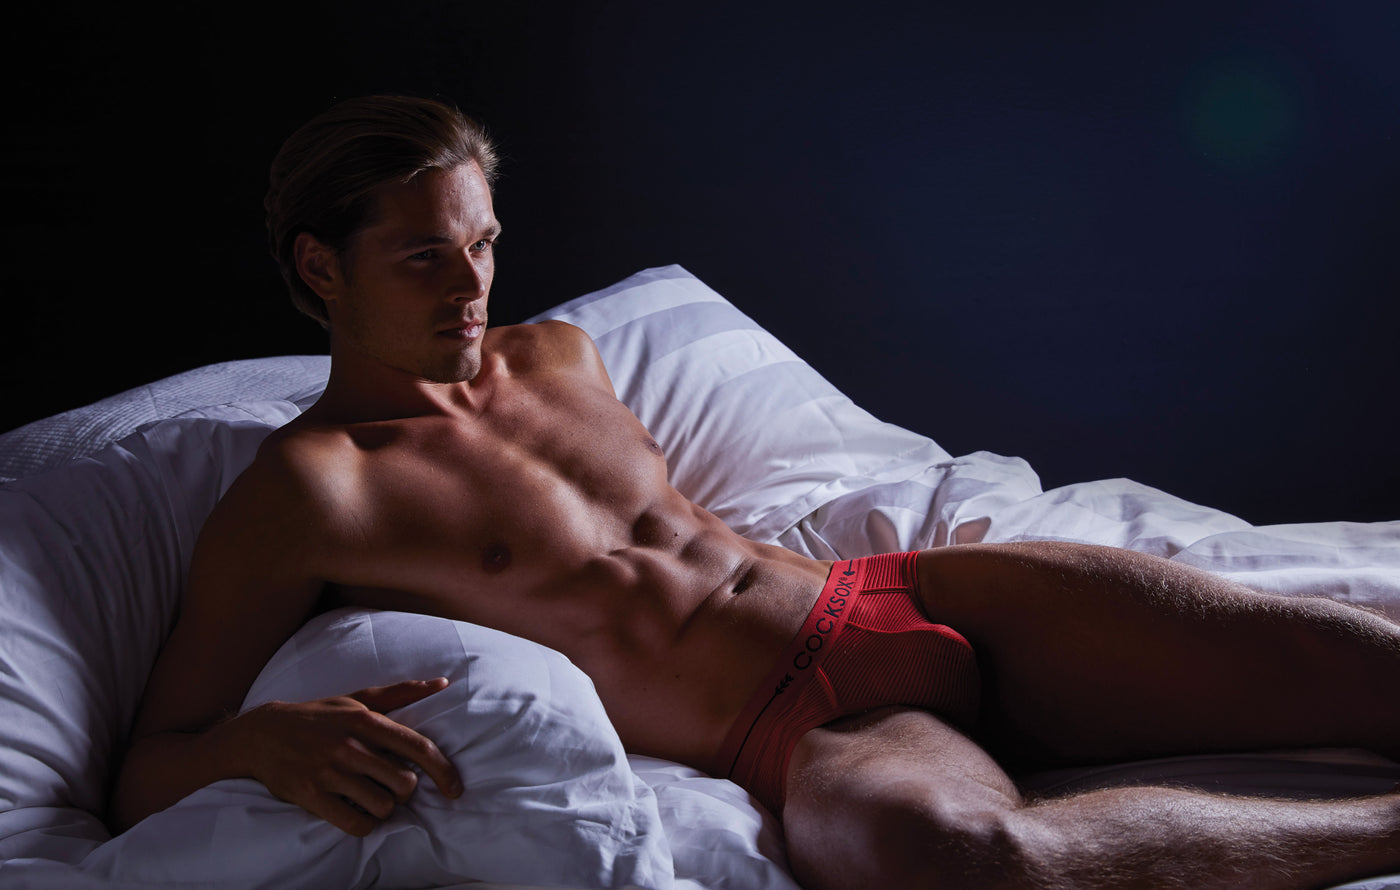 Lifestyle editorial image of the Cocksox CX76SD Shredded collection mesh underwear Sports Brief in Eclipse